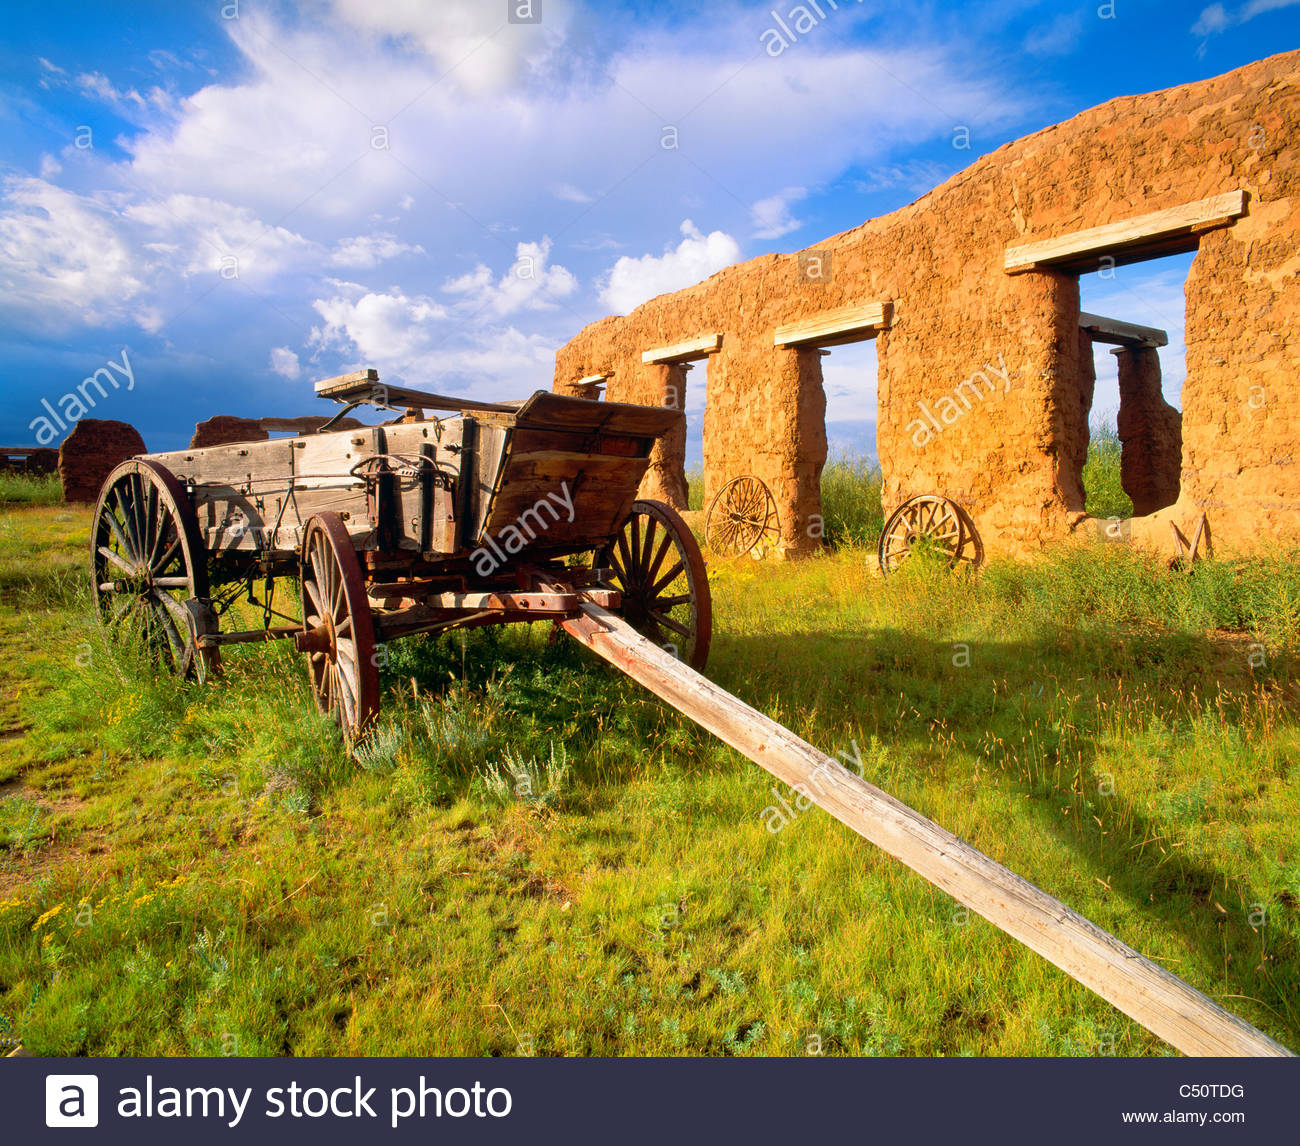 [Freight wagon] along the 'Santa Fe Trail' [Fort Union National Monument] 'New Mexico' - Stock Image